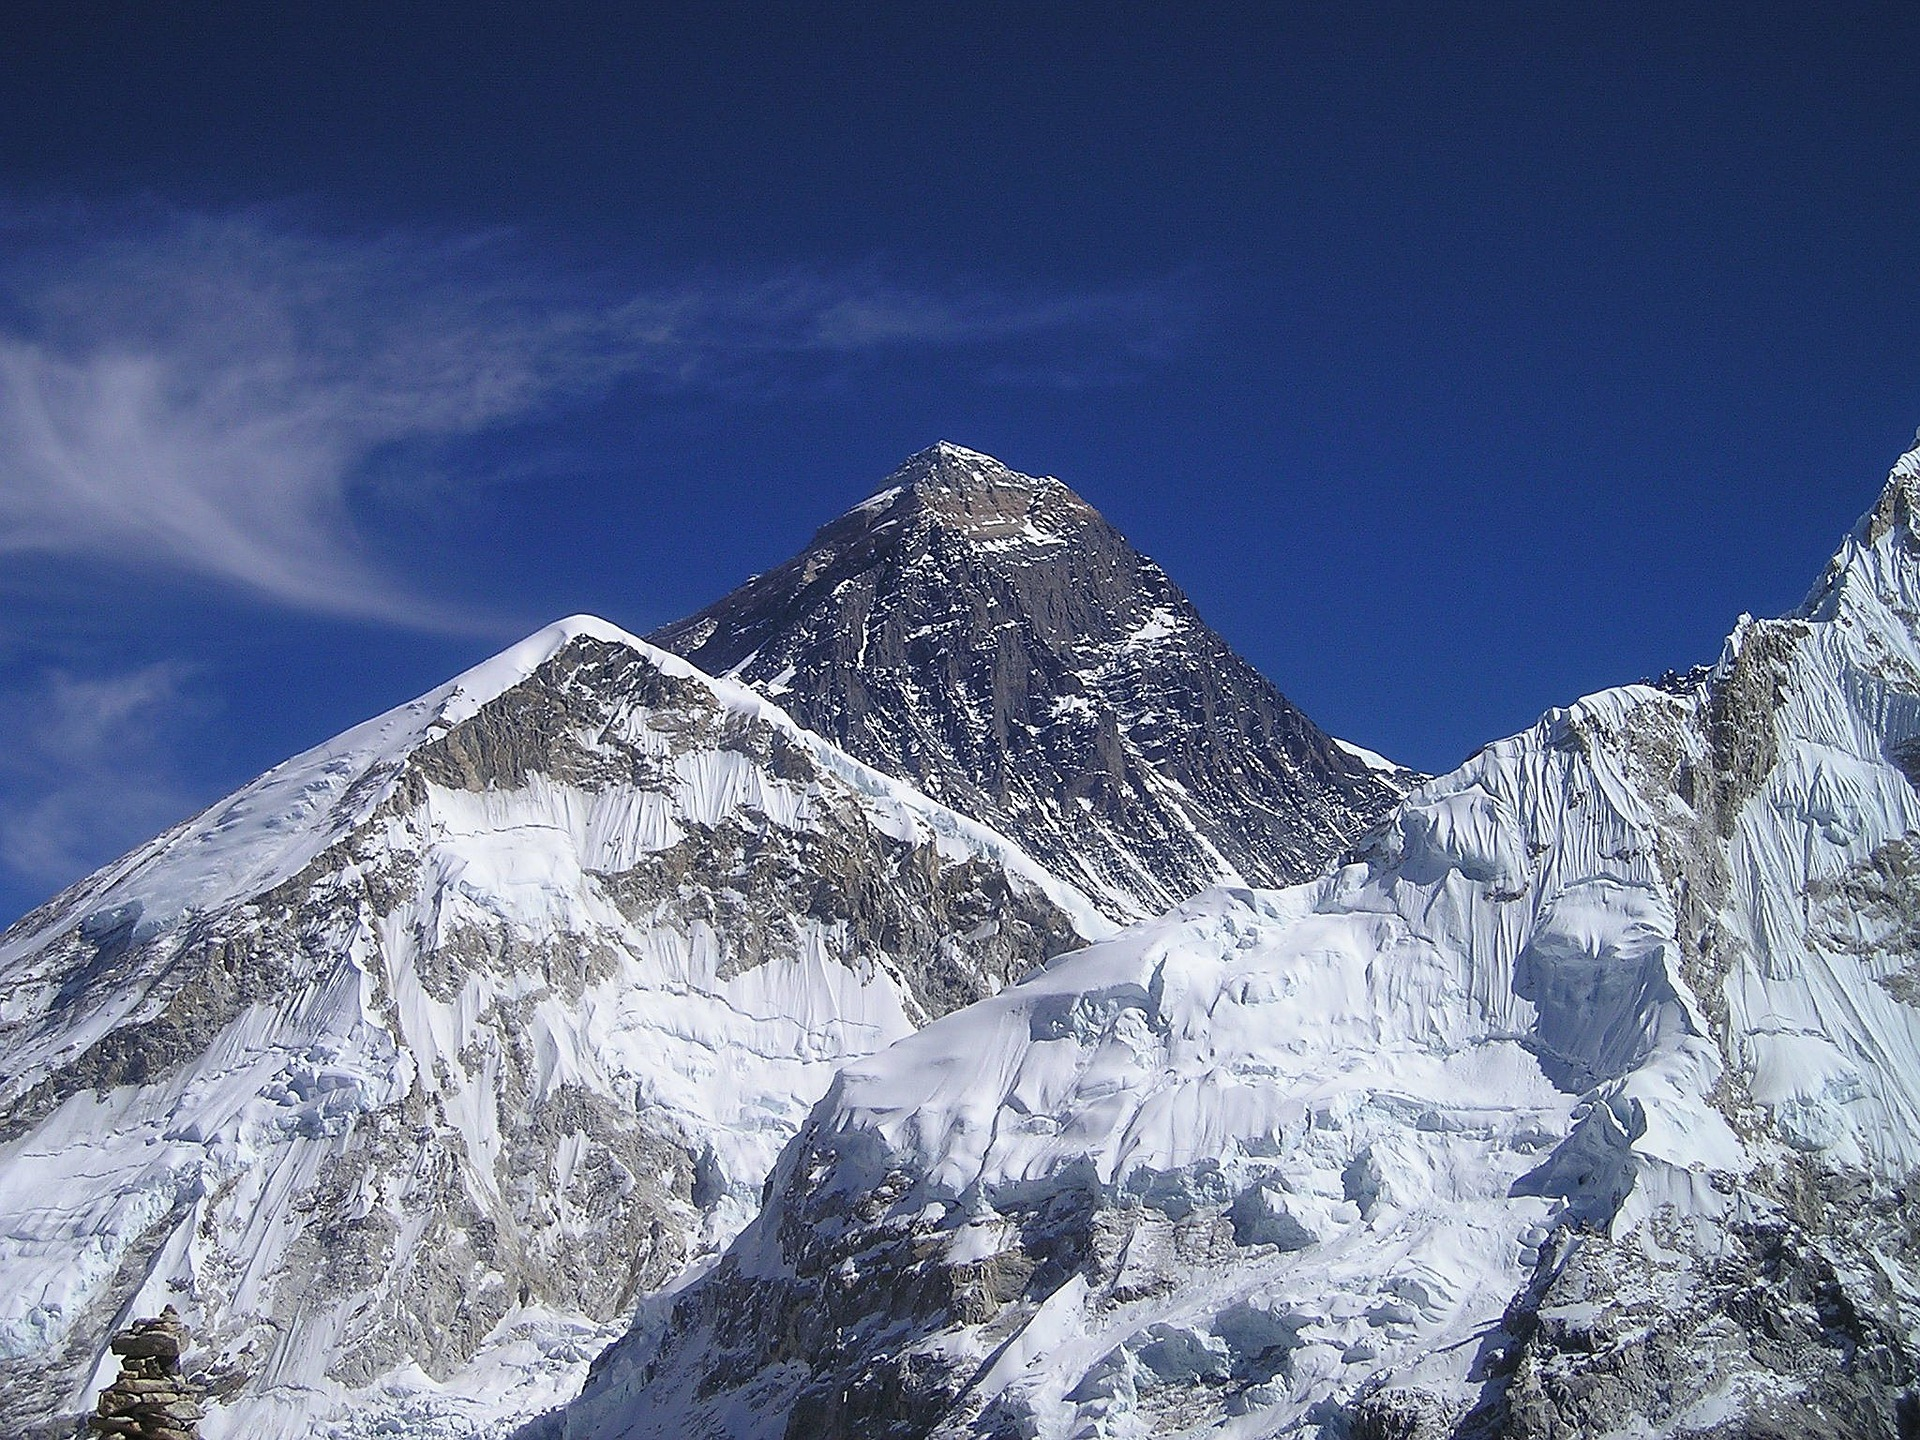 How Long Does It Take To Climb Mt. Everest